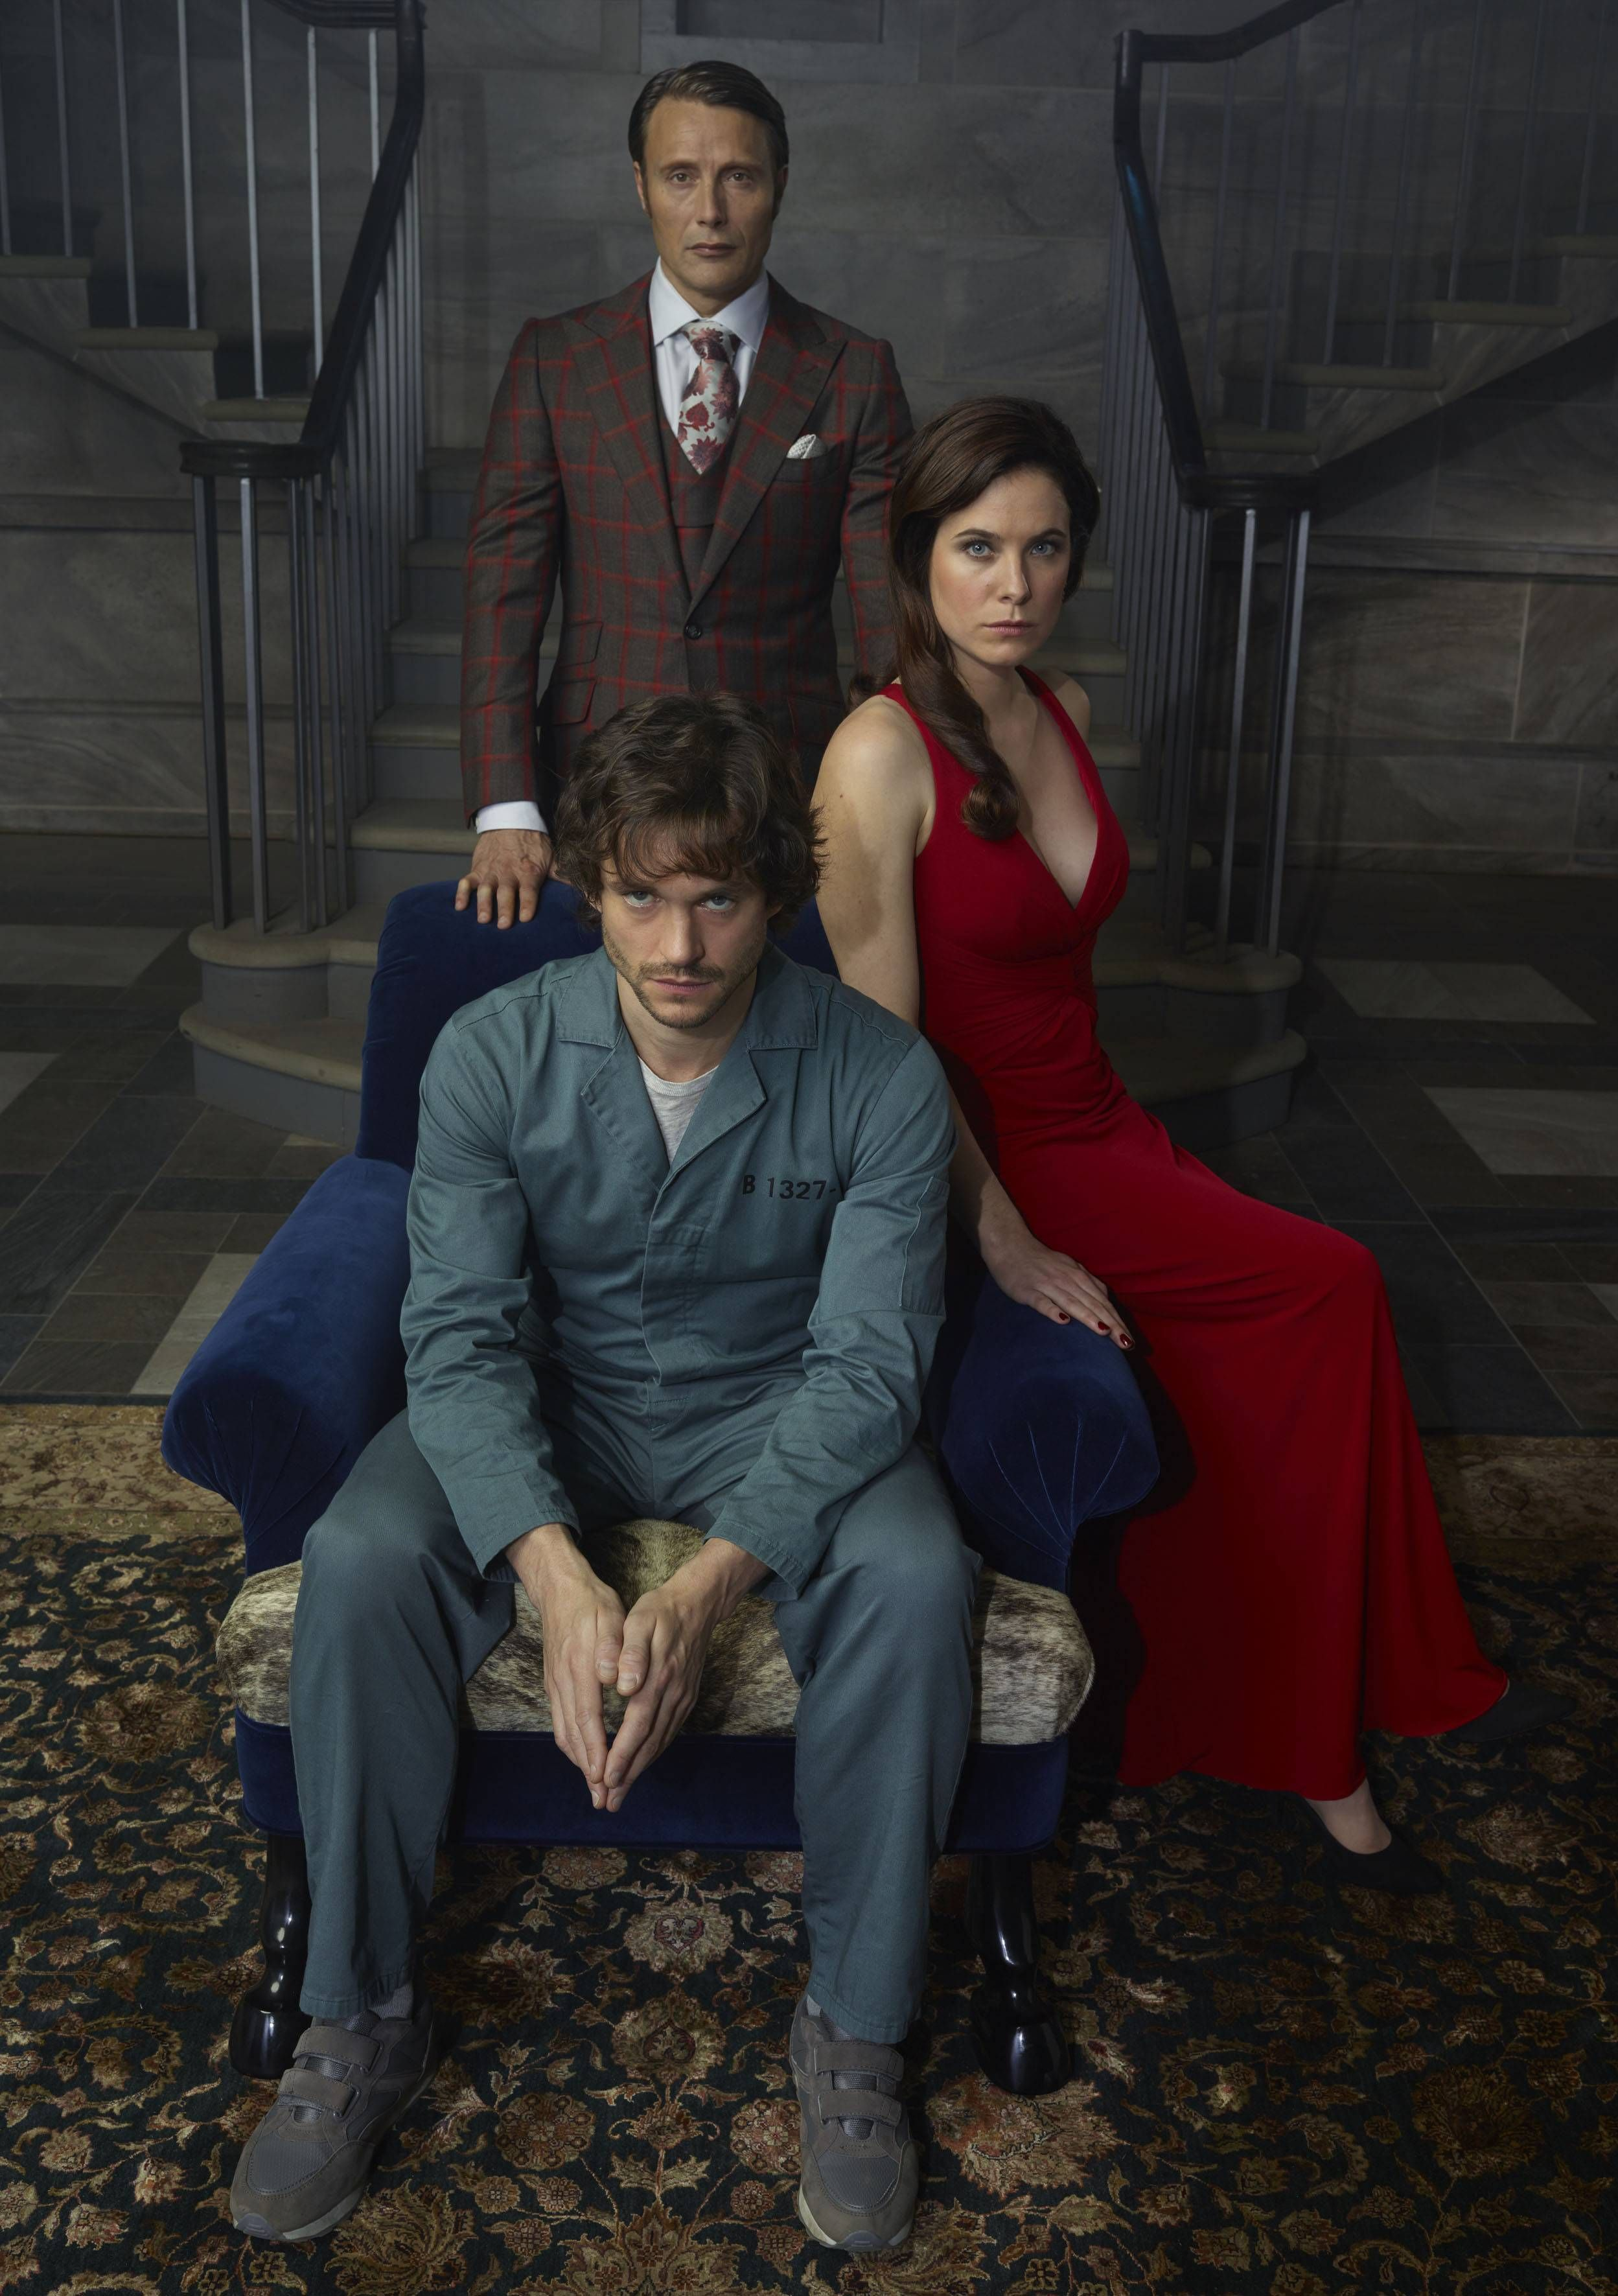 Hannibal promotional images season 2 hannibal 2 hannibal series hannibal tv series - Hannibal tv series actors ...